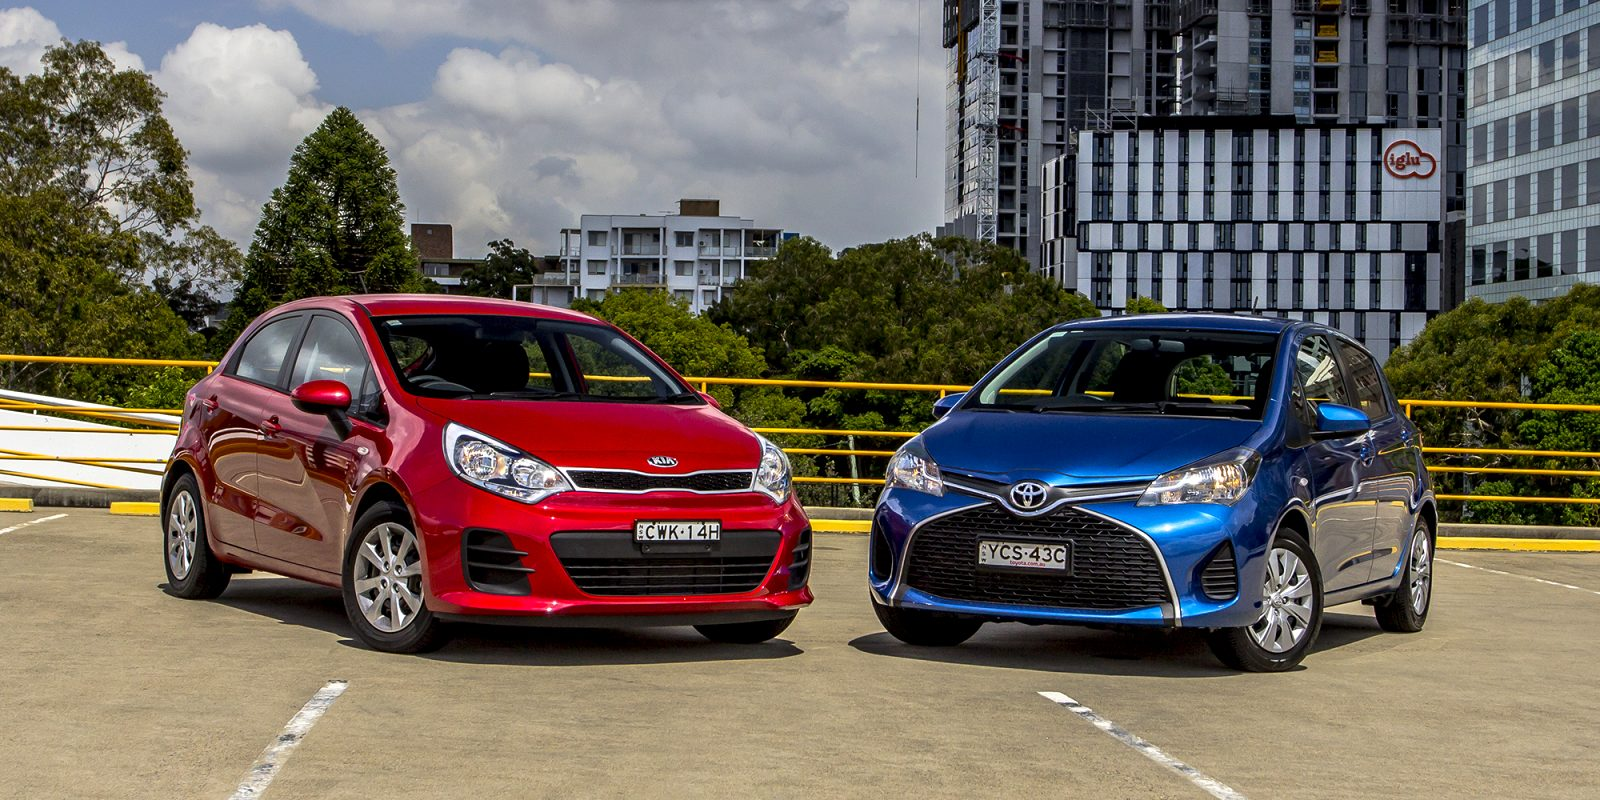 kia rio vs toyota yaris 2021 Exterior and Interior